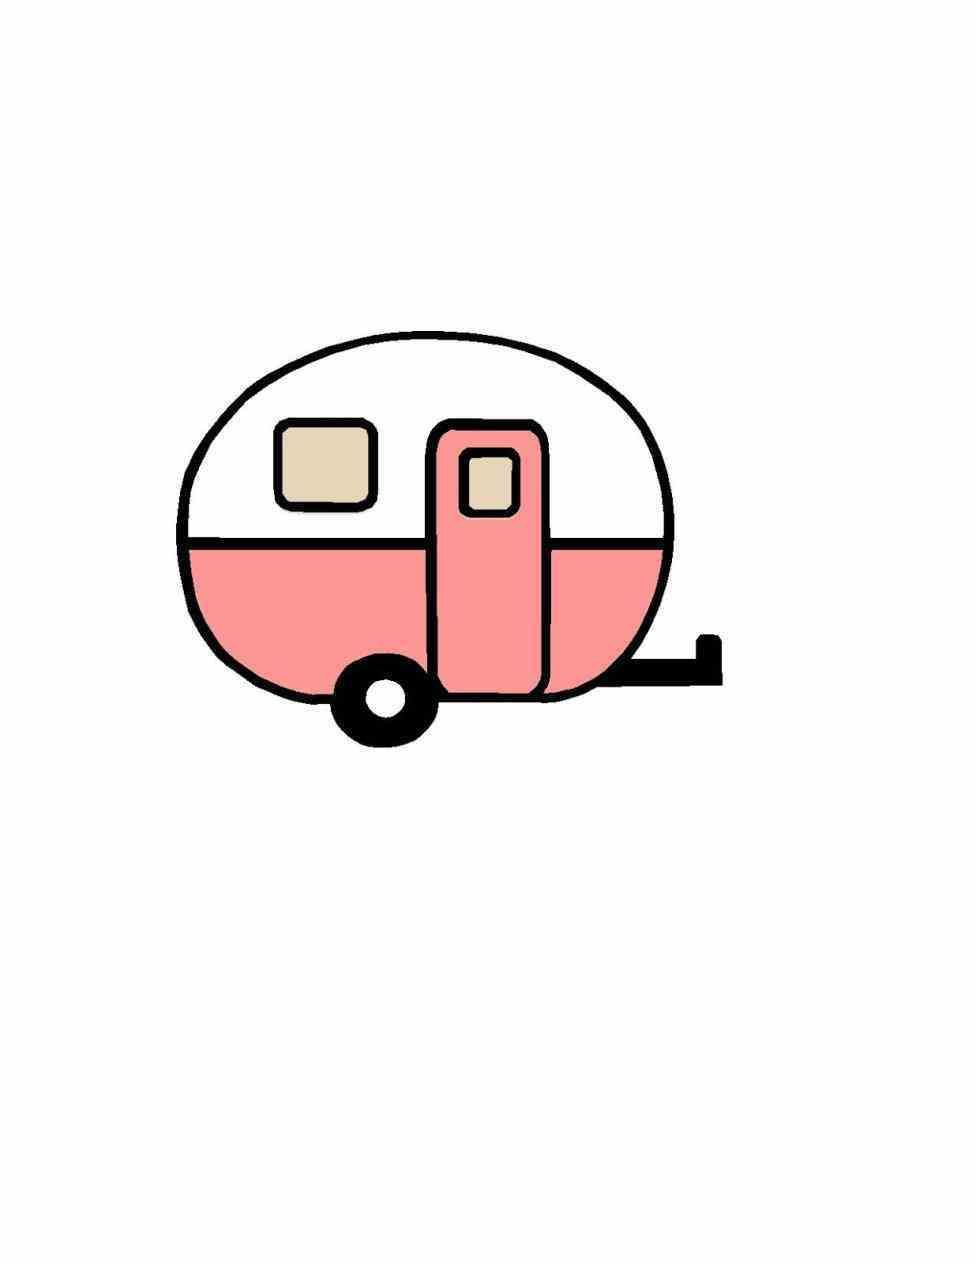 Camper Clip Art With Designs All Over It